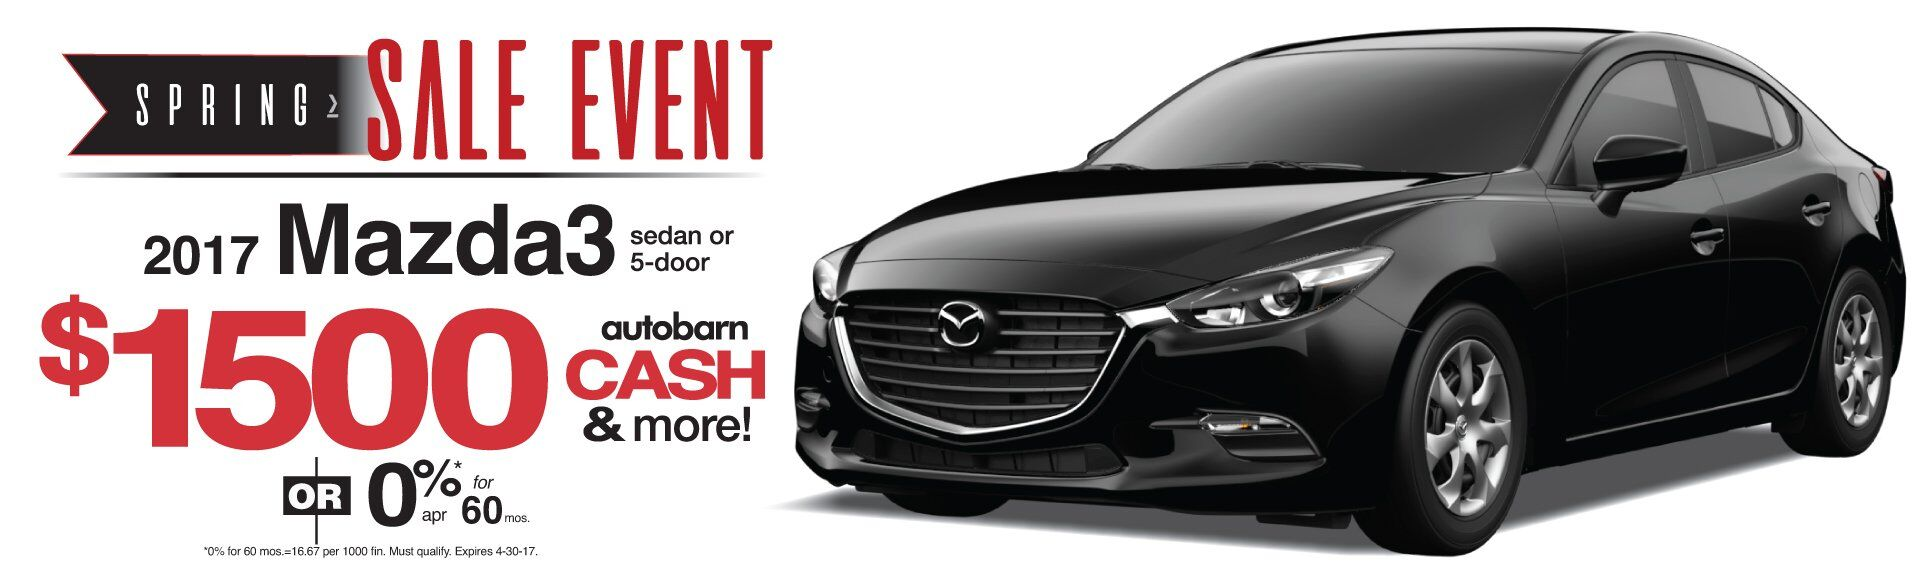 Spring FWD Sales Event on 2017 Mazda3